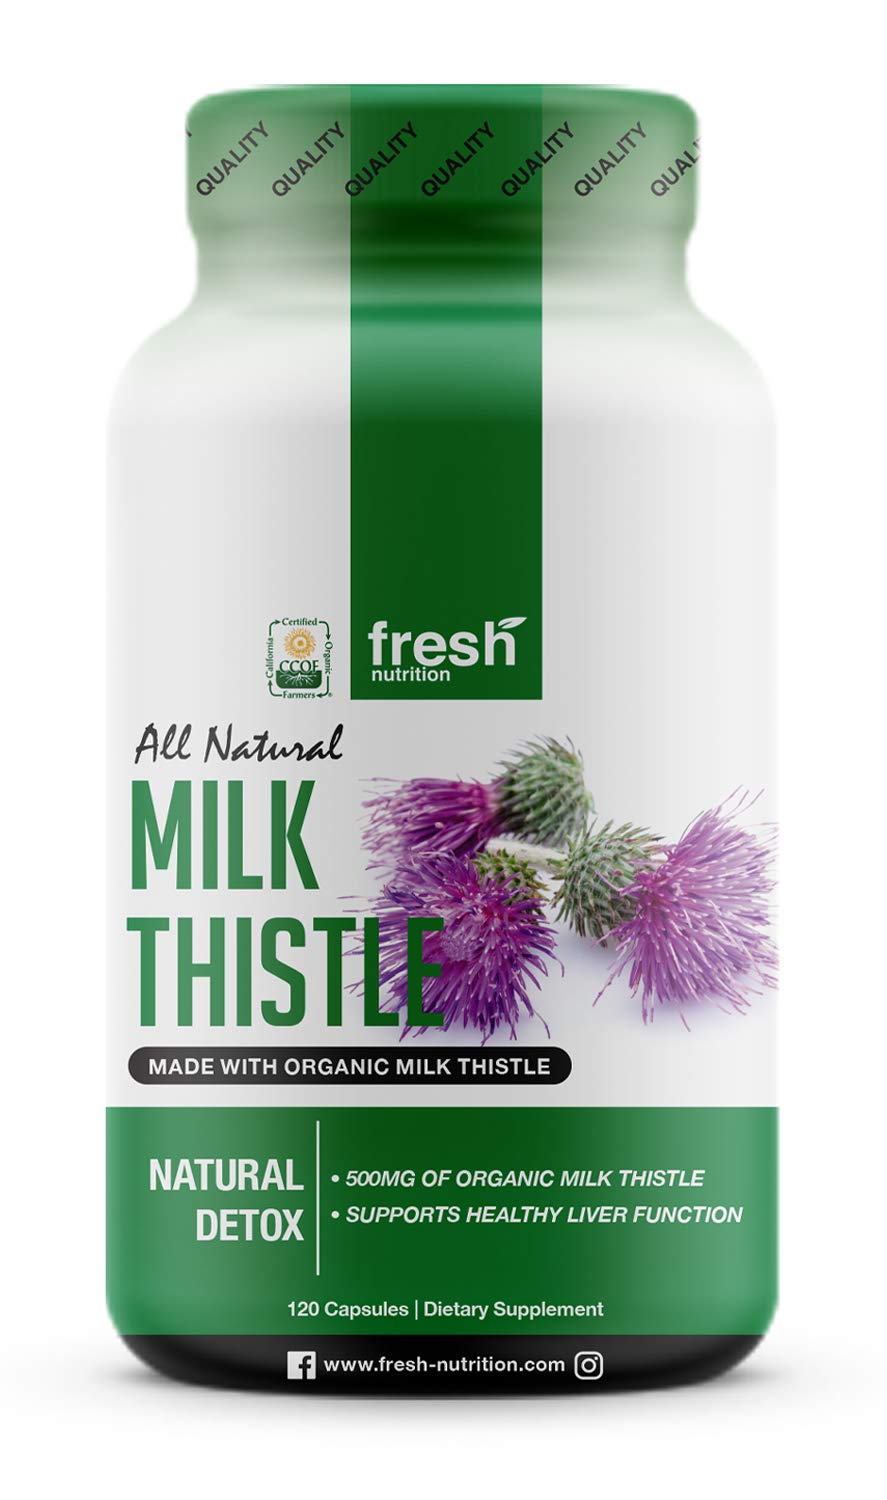 Milk Thistle Organic - 120 Servings of 2000mg - Strong - 4 Month Supply - CCOF Organic - Silymarin Thisilyn Seed Standardized Extract 4:1 Capsules - Great for Liver Cleanse - USA by Fresh Nutrition